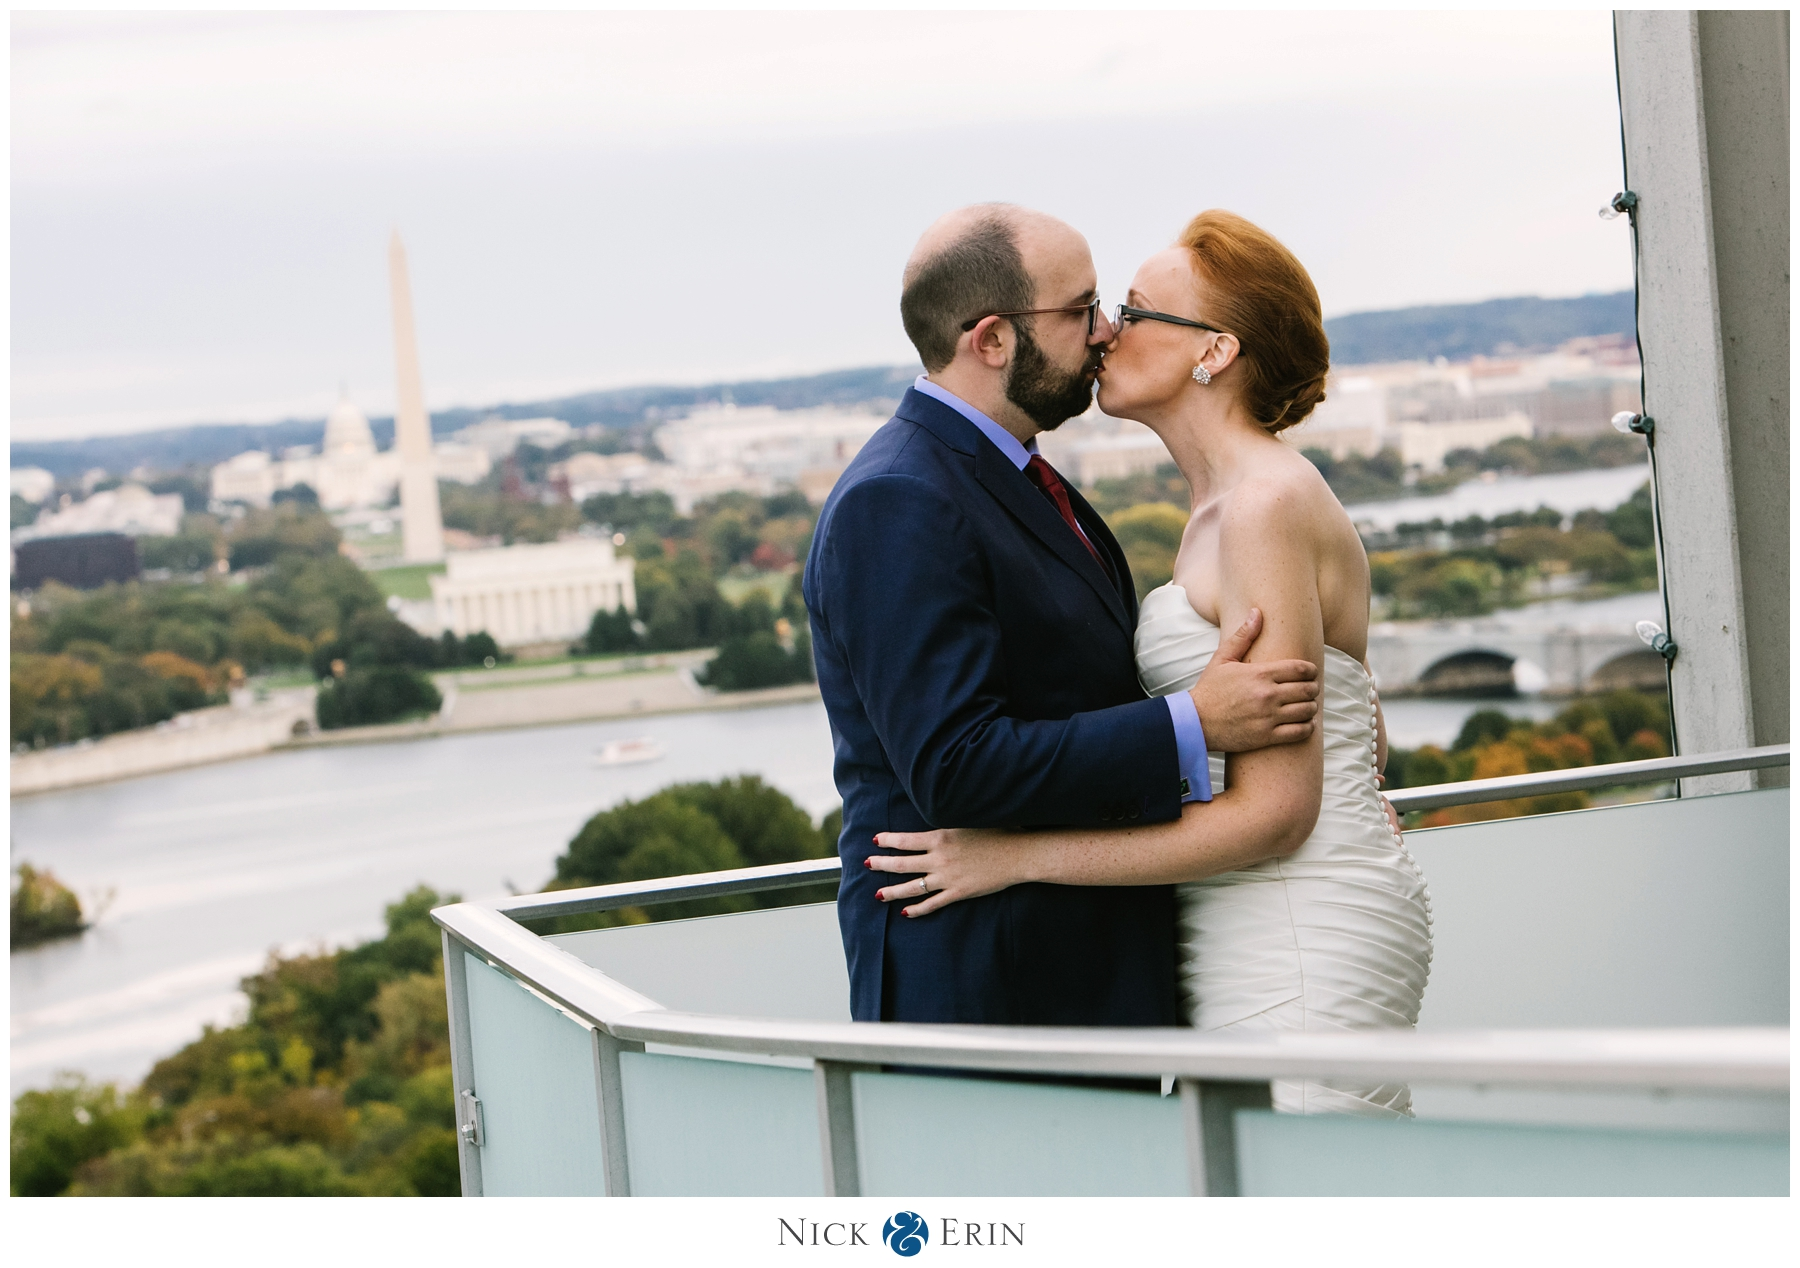 donner_photography_washington-dc-wedding_alanna-josh_0035